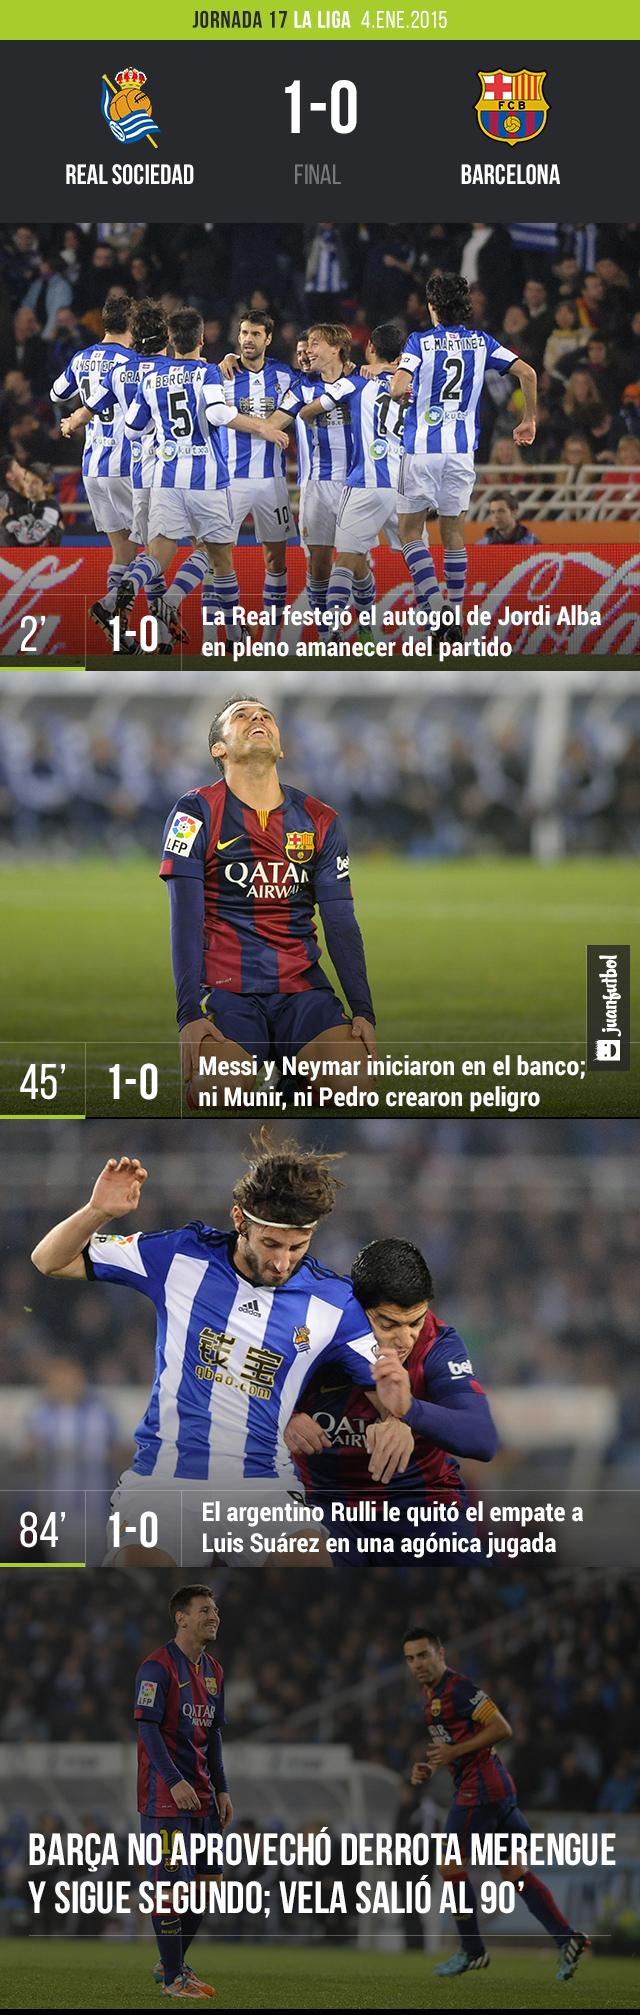 Real Sociedad vs. Barcelona